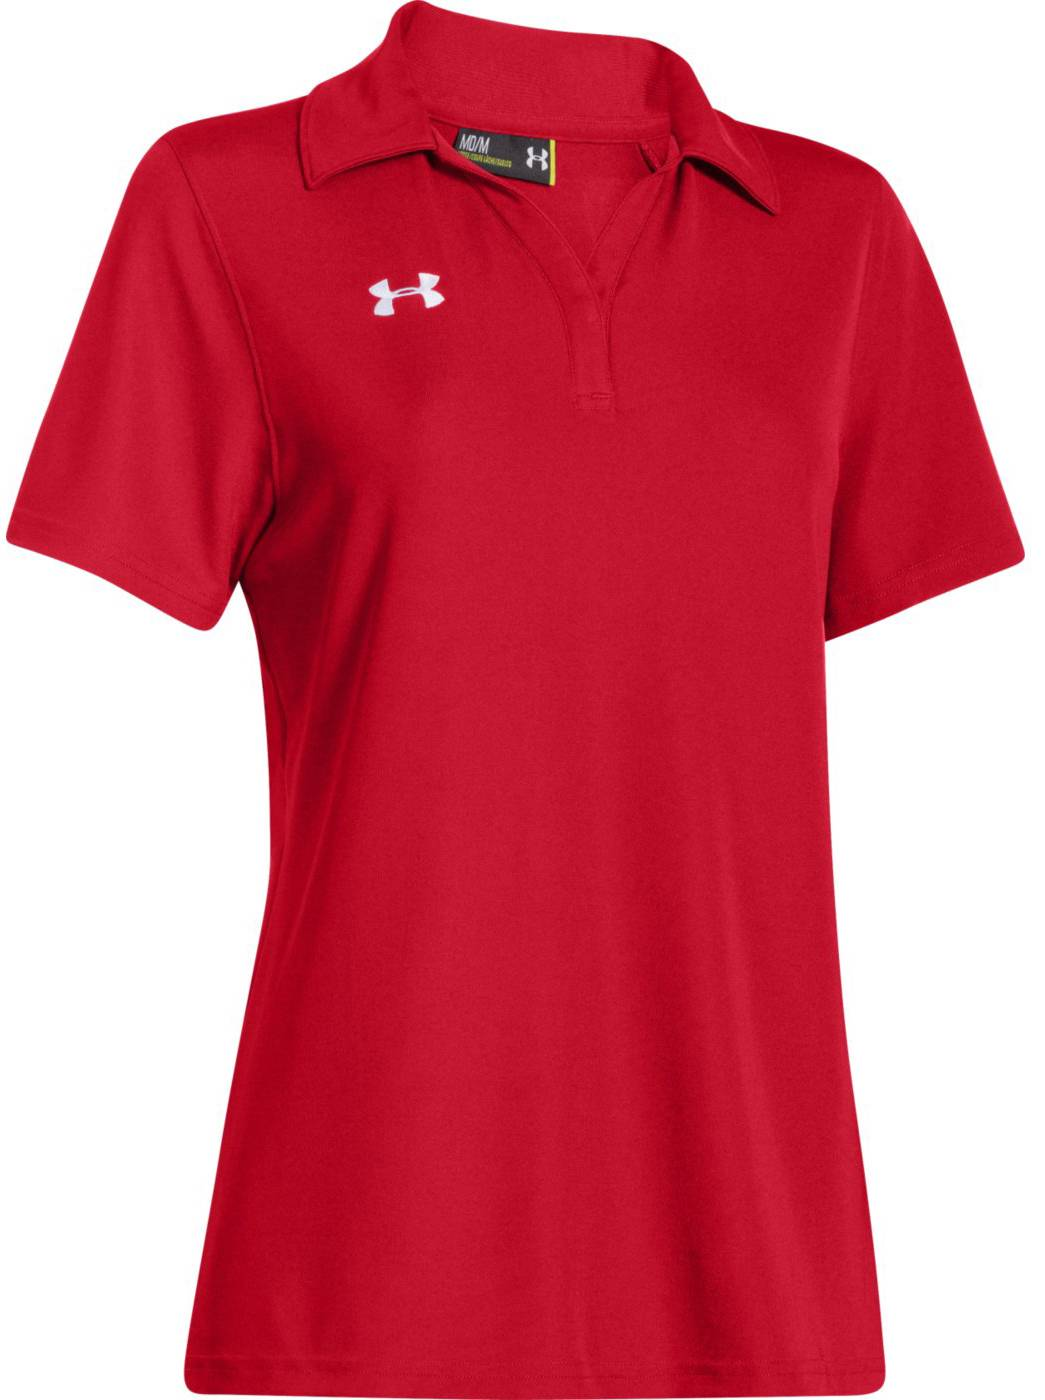 Under armour custom ladies performance polo for Personalized under armour shirts